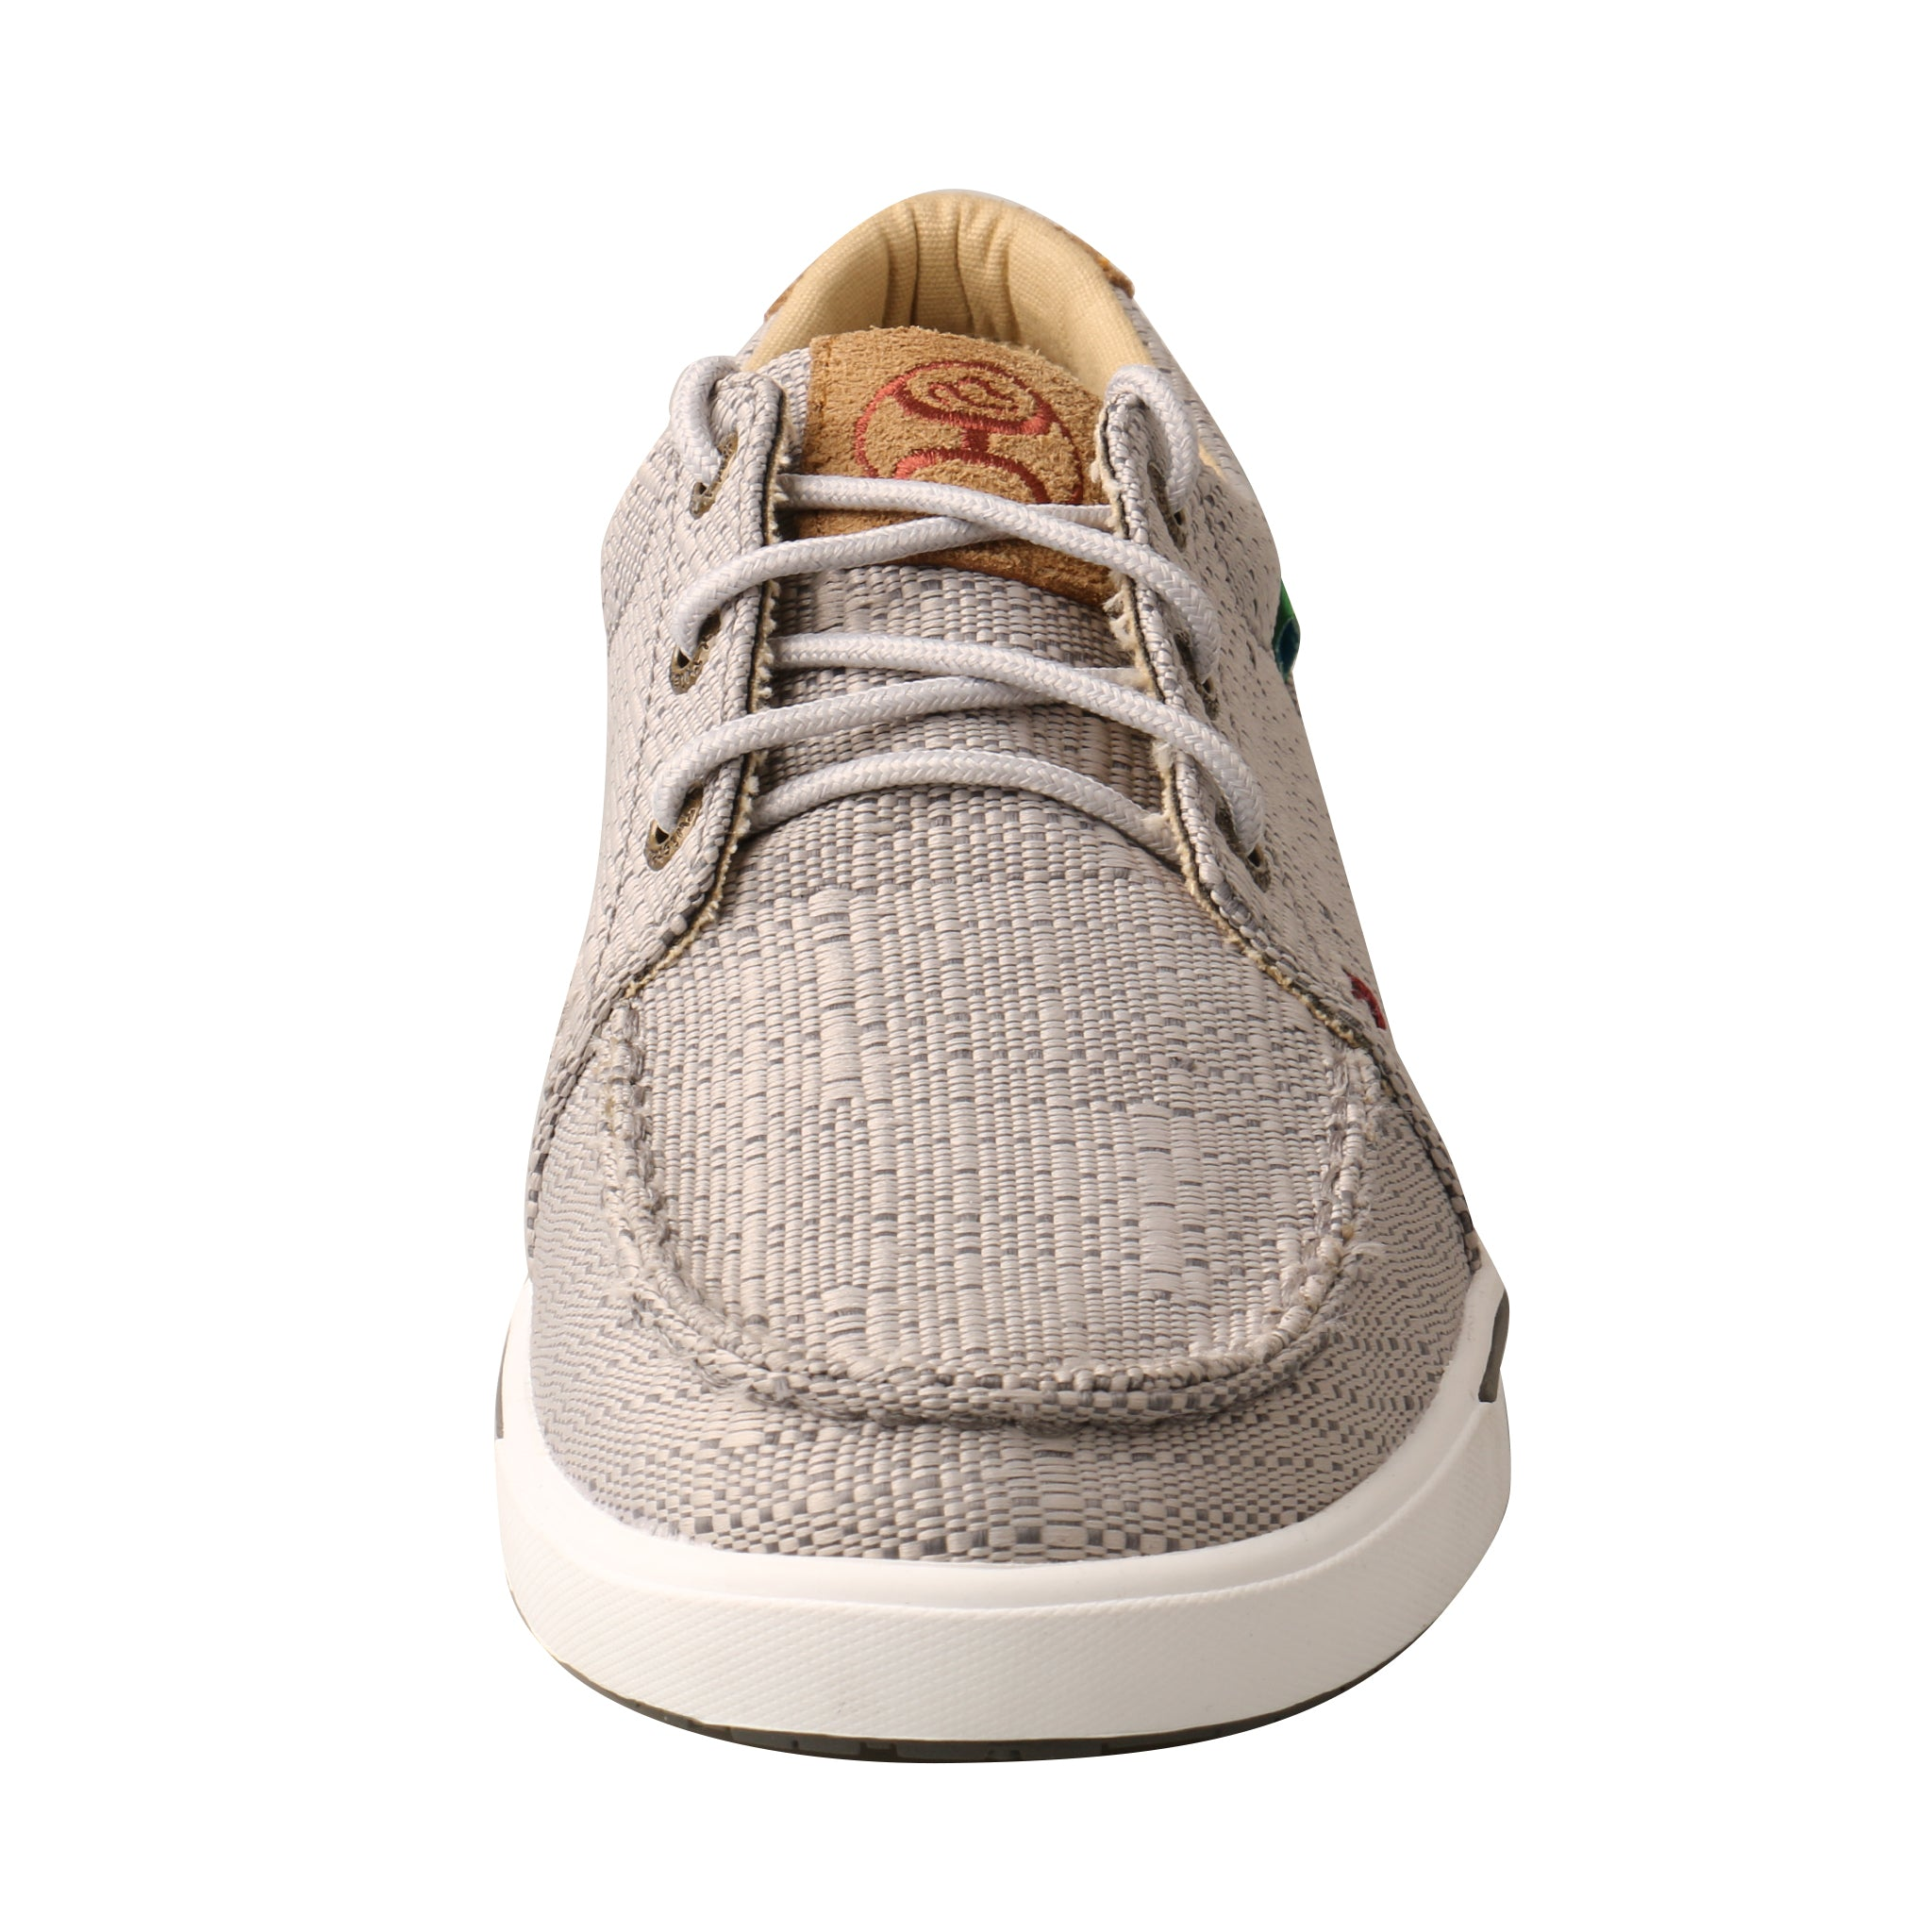 Picture of the front toe of the Women's Twisted X Hooey Loper WHYC009